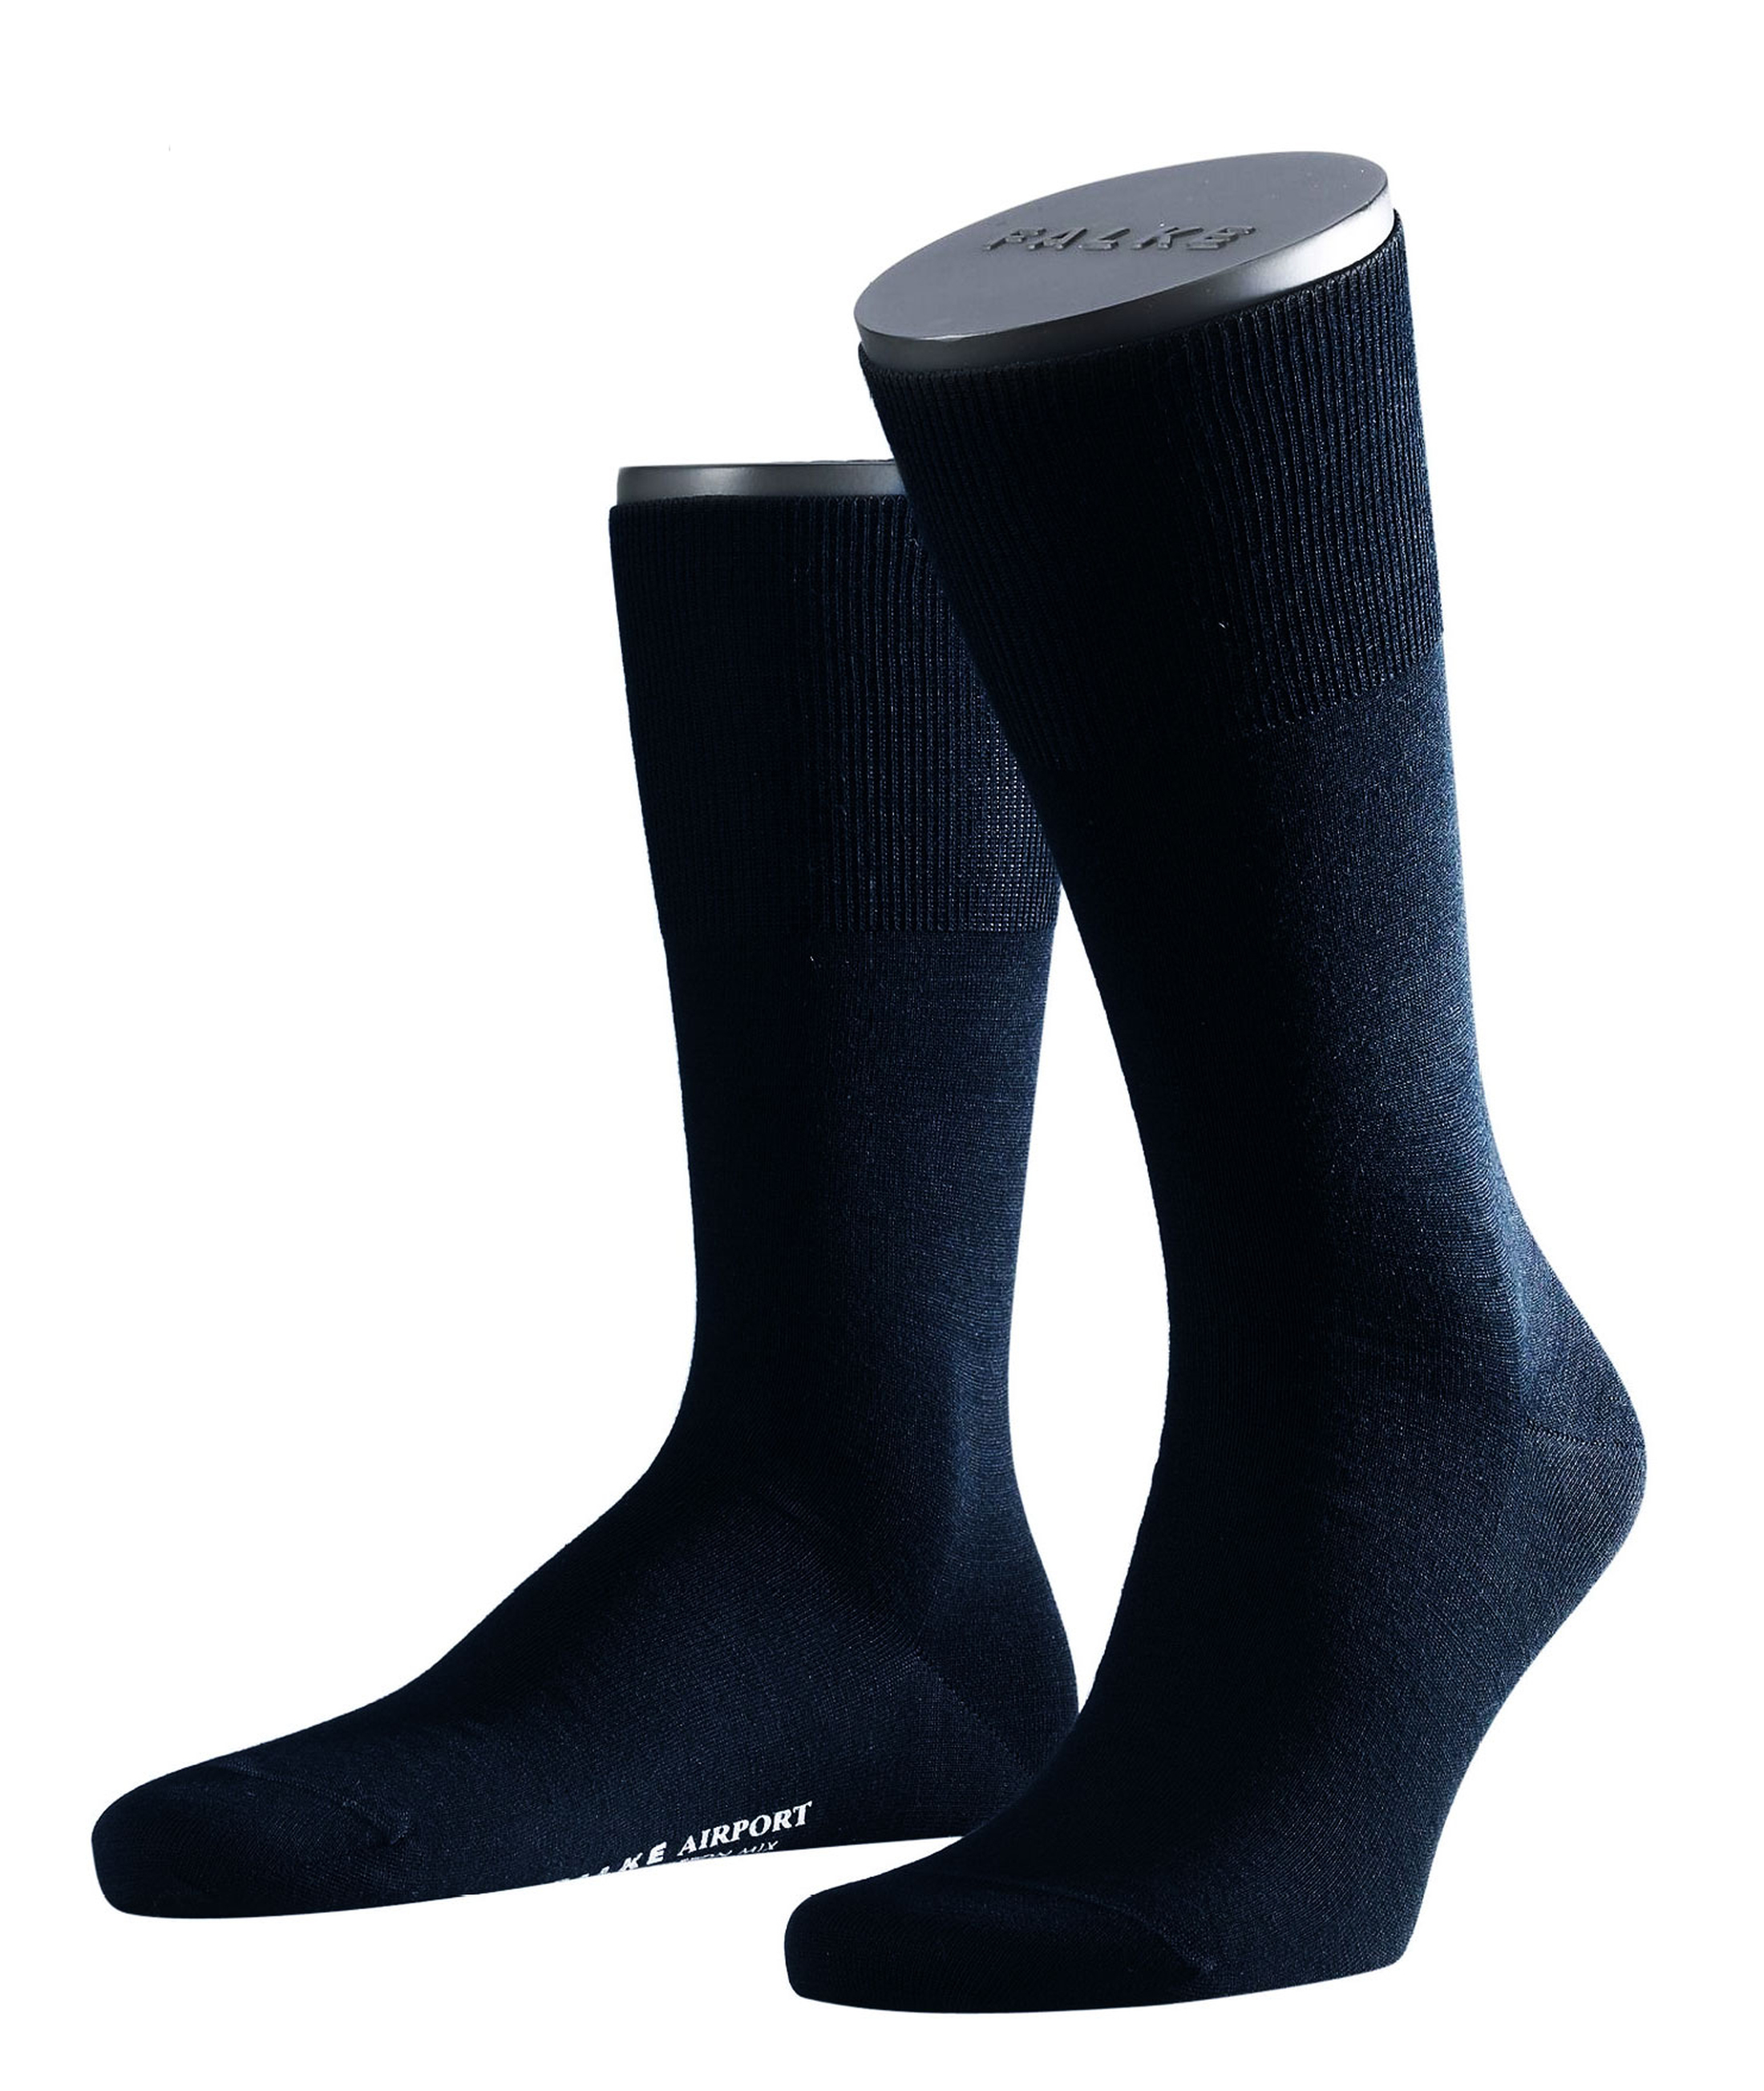 Falke Airport Socks Navy 6370 foto 0